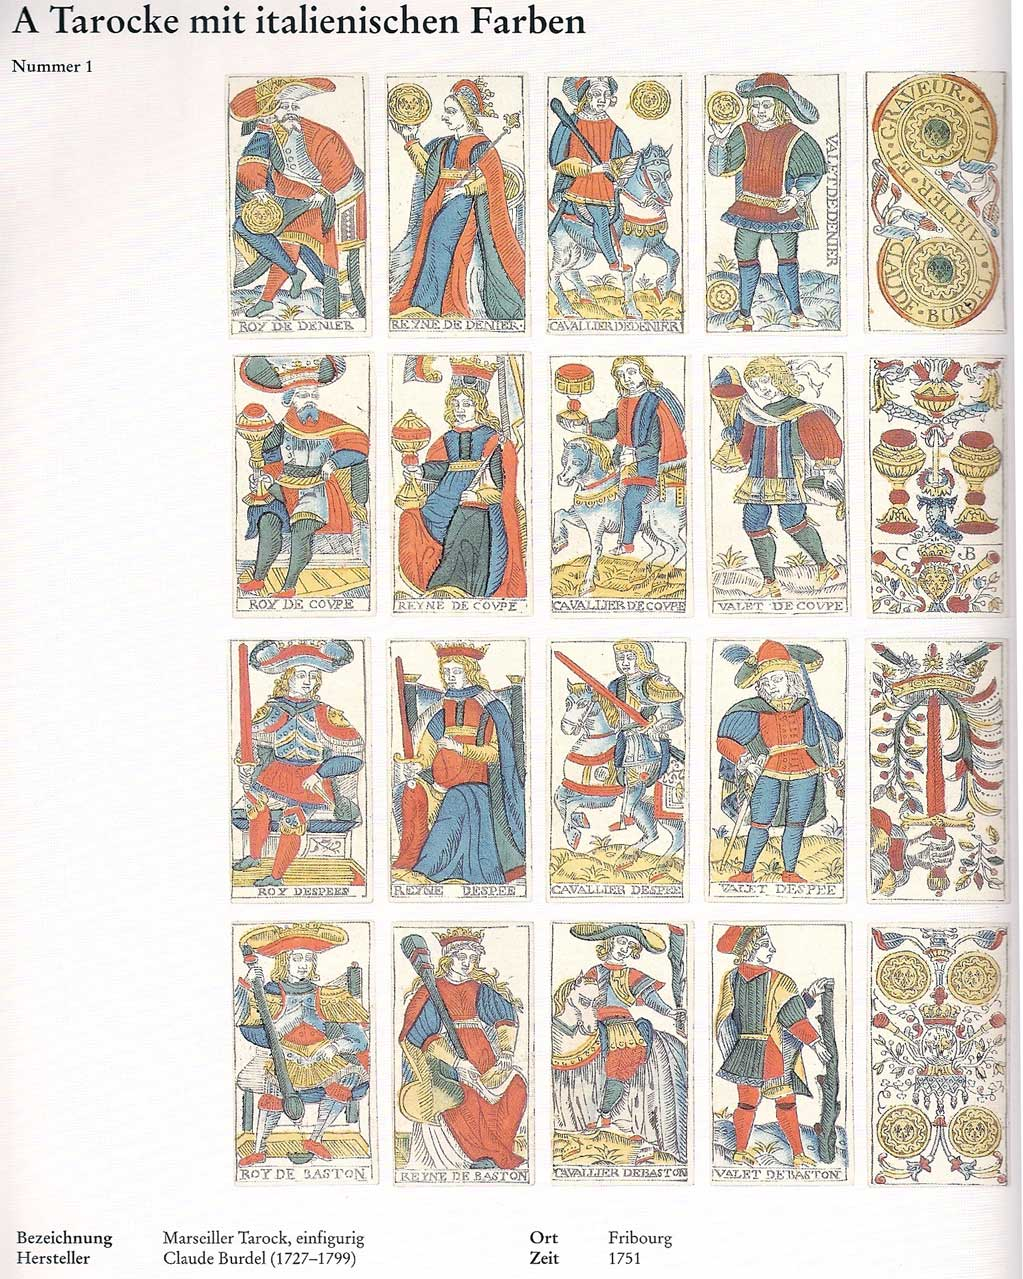 Tarot Classic: Why Does Kaplan Say It's By Burdel?